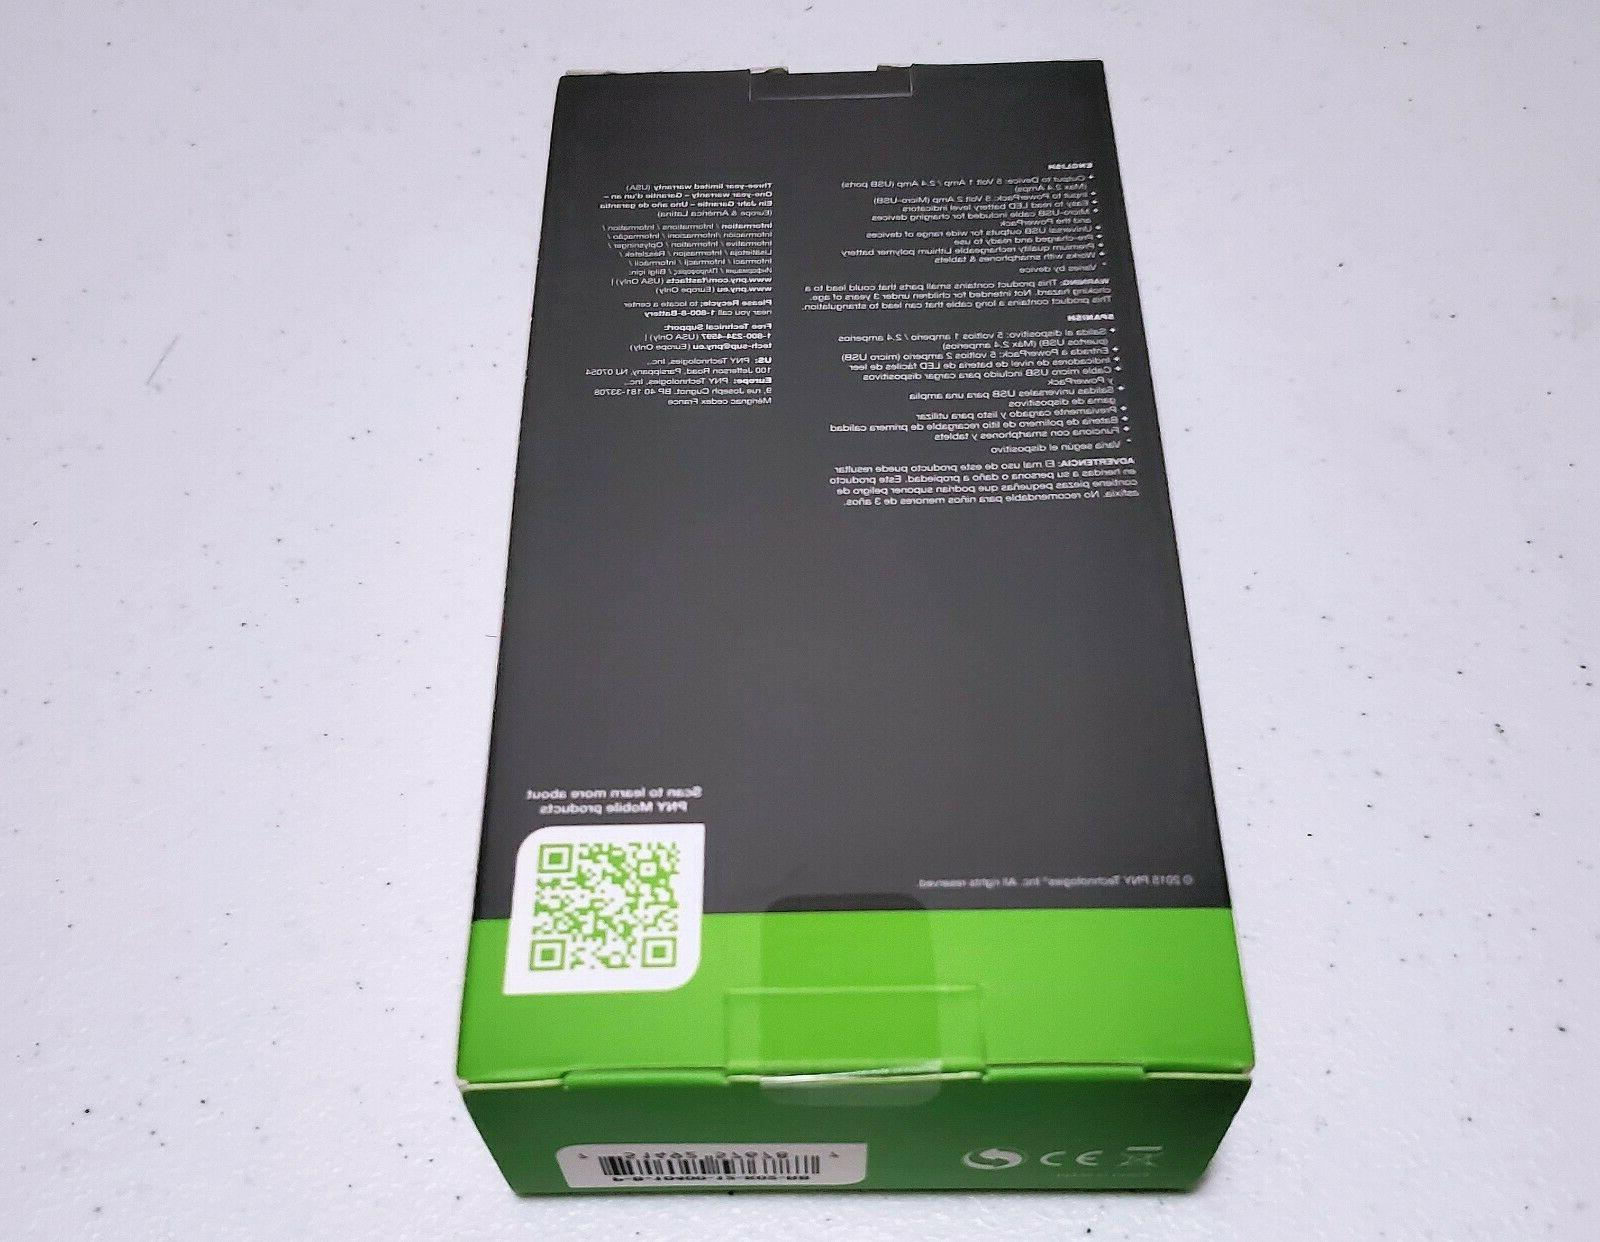 PNY Power Bank T10400 lithium-ion battery